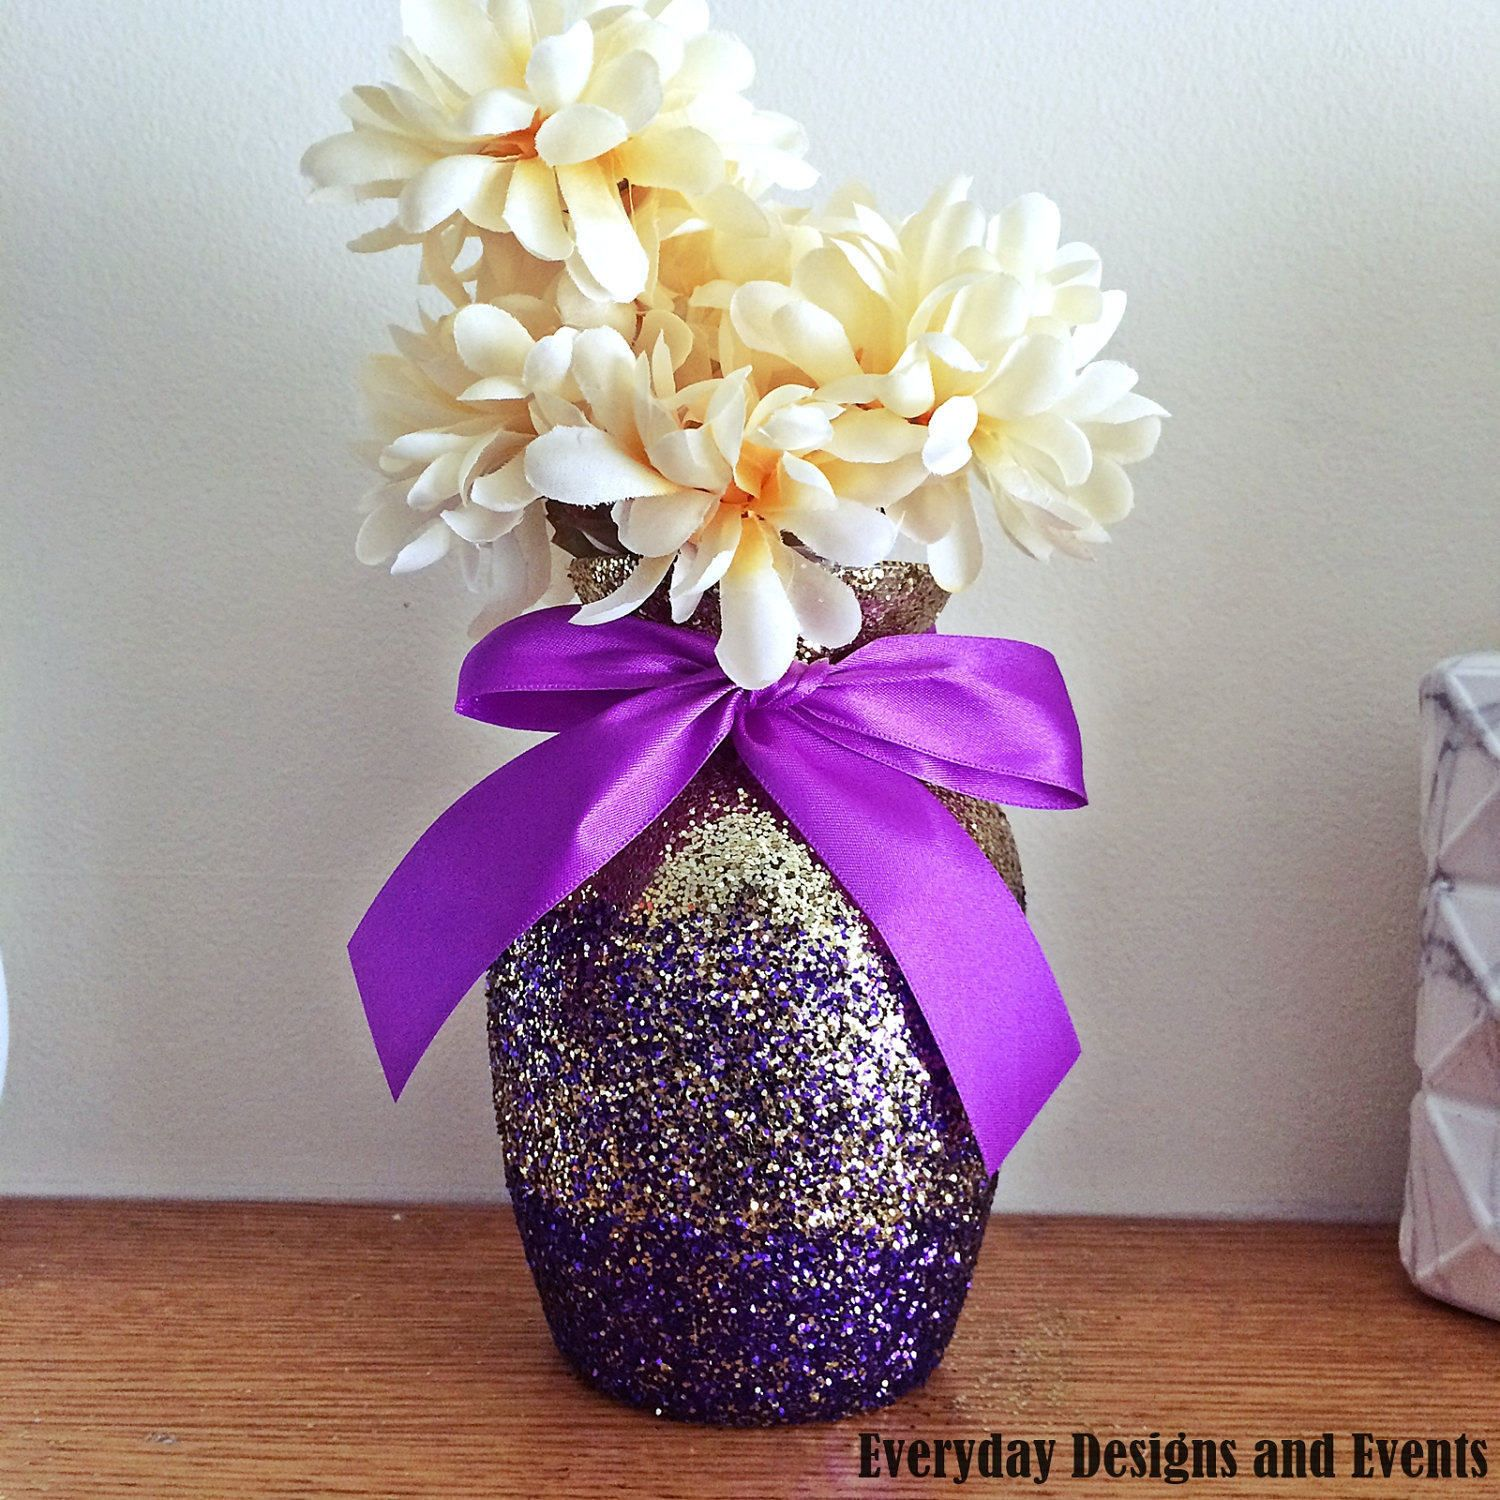 4 Ombre Vases, Gold And Purple Ombre Vases, Baby Shower,